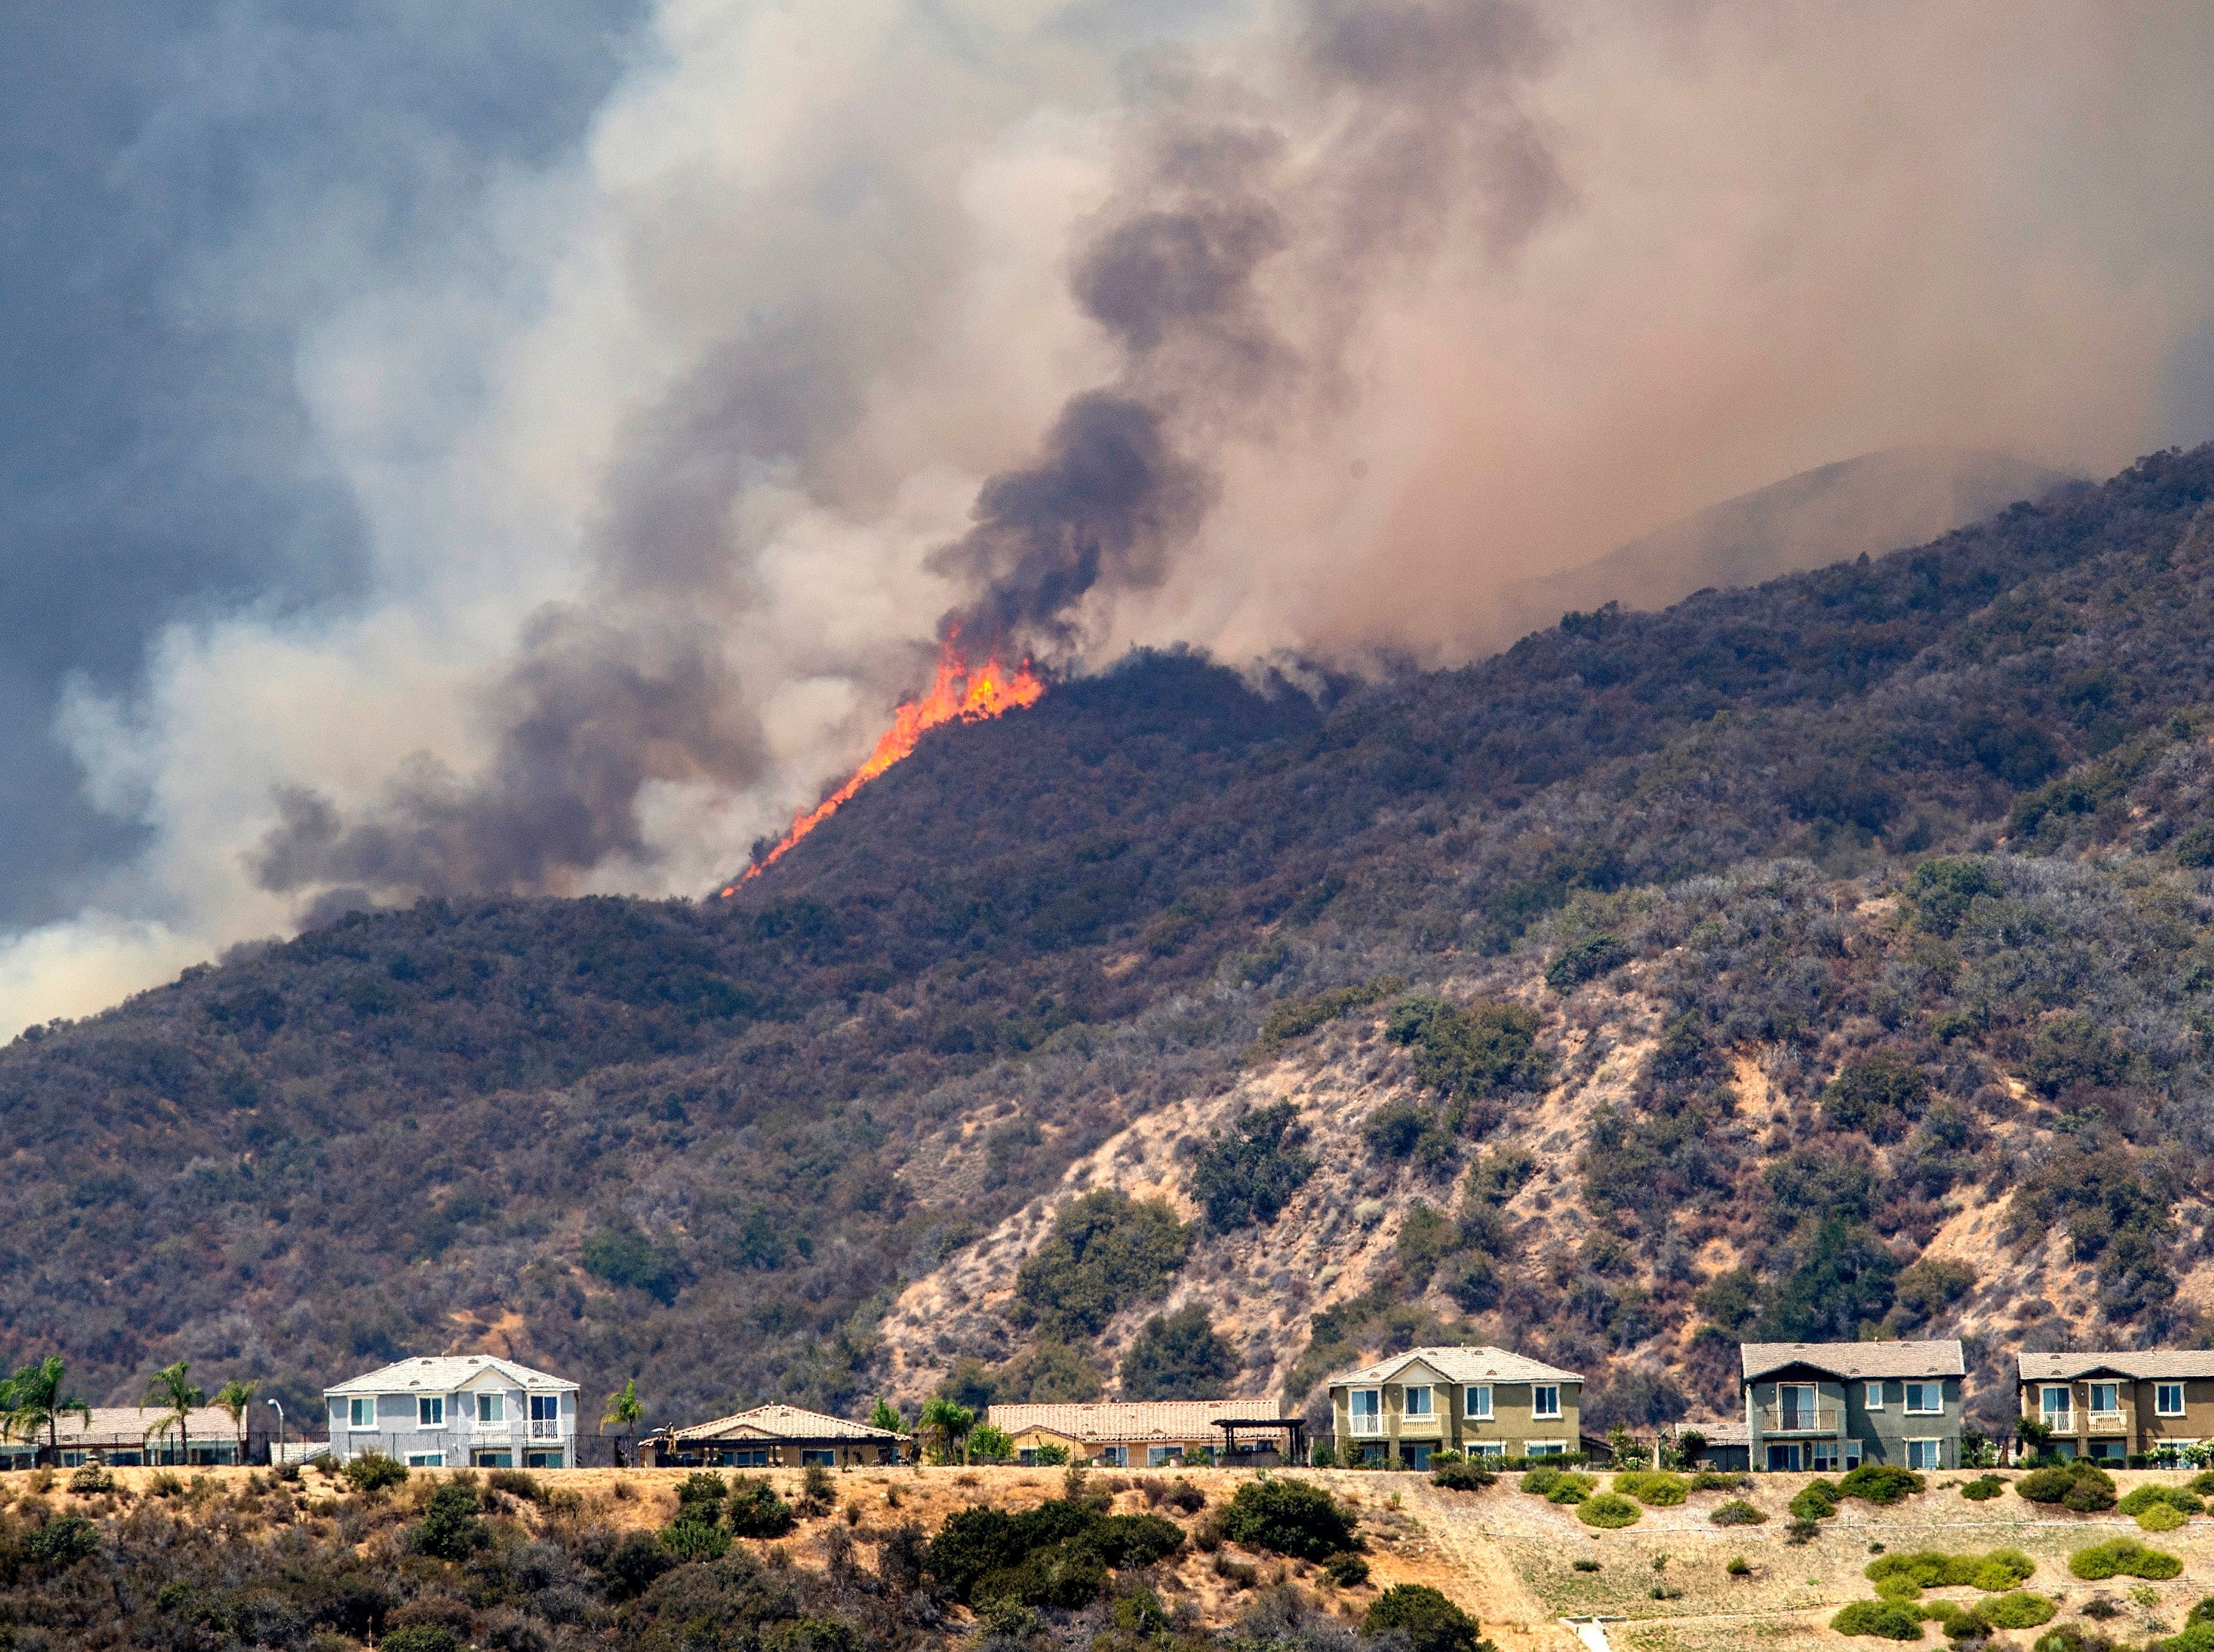 """The """"Holy Fire"""" burns near homes in Lake Elsinore, Calif., on Wednesday, Aug. 8, 2018. (Mark Rightmire/The Orange County Register via AP)"""